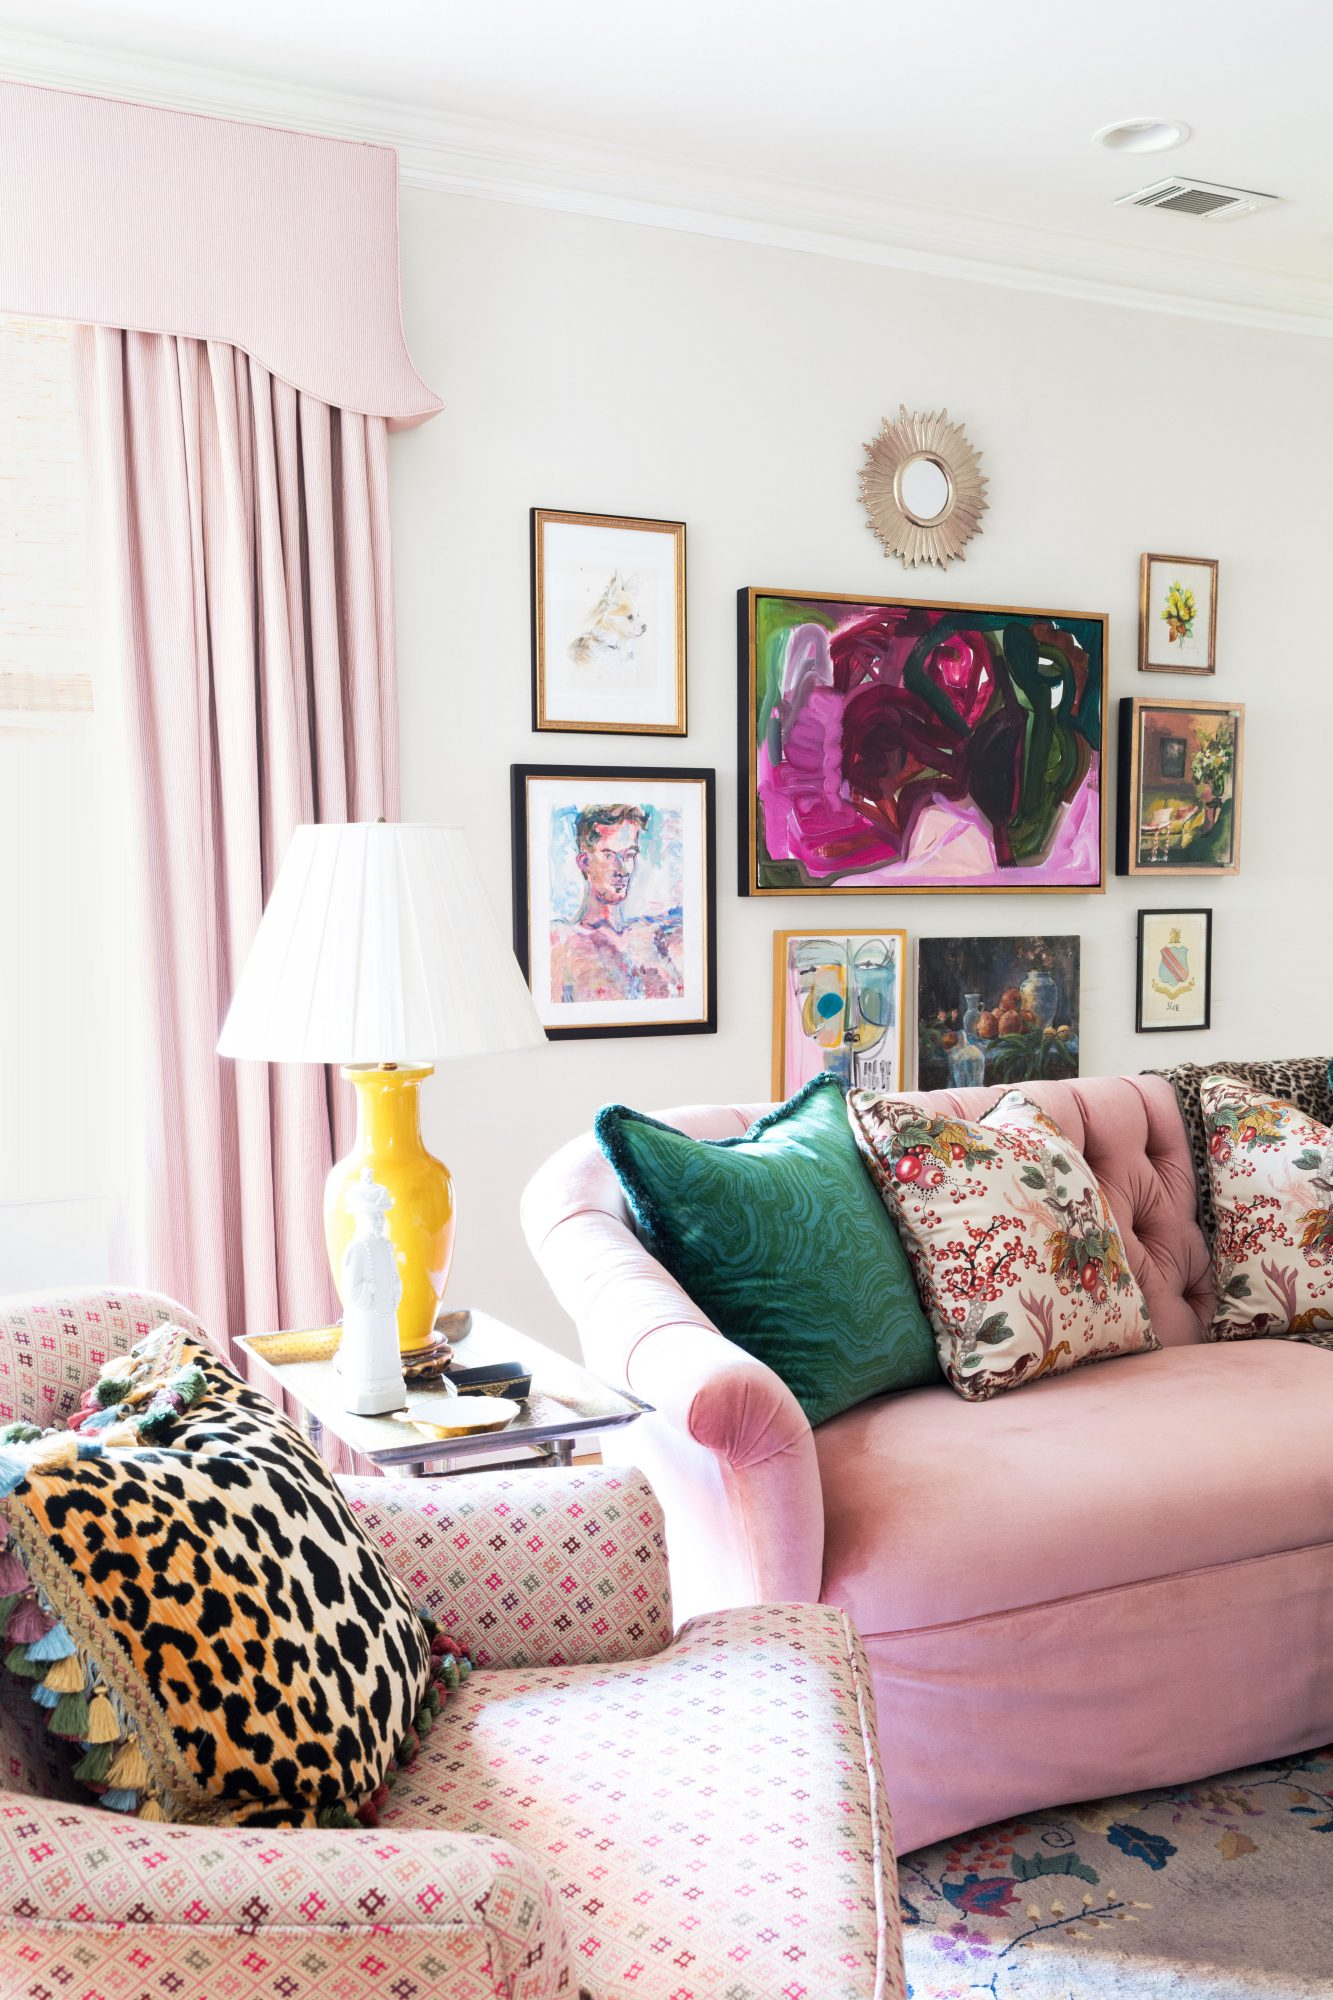 White Wall Living Room with Pink Sofa and Gallery Wall of Art